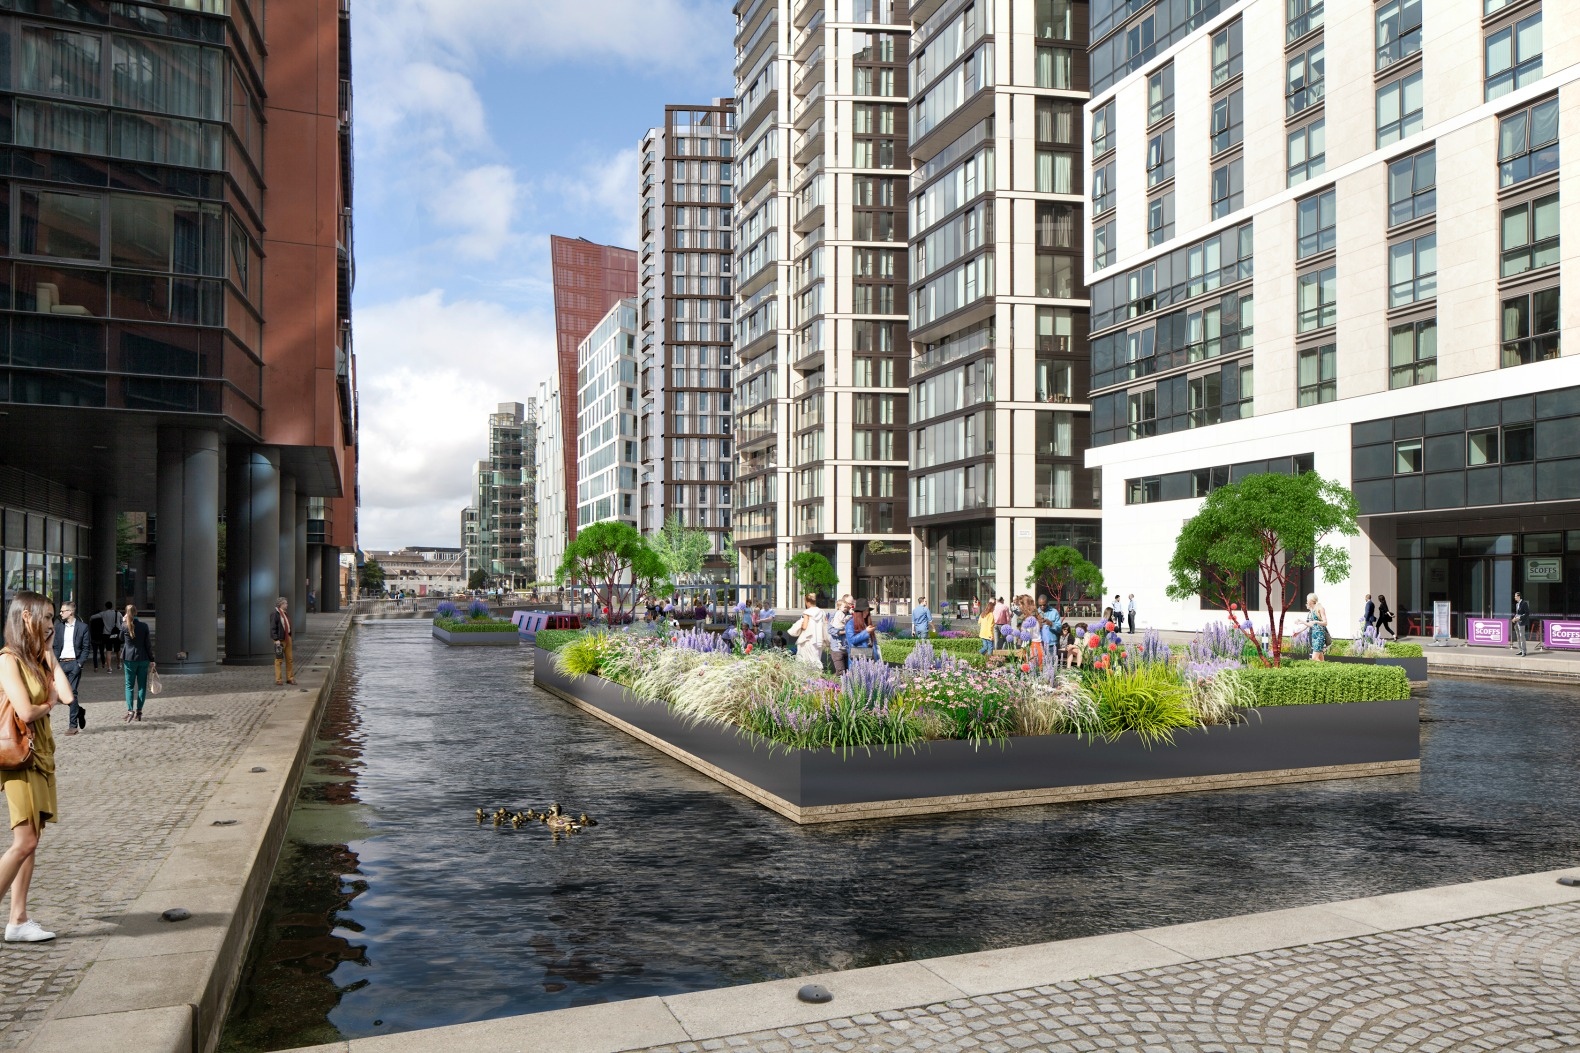 London 39 s first floating park slated to open this spring for Flowers union square nyc